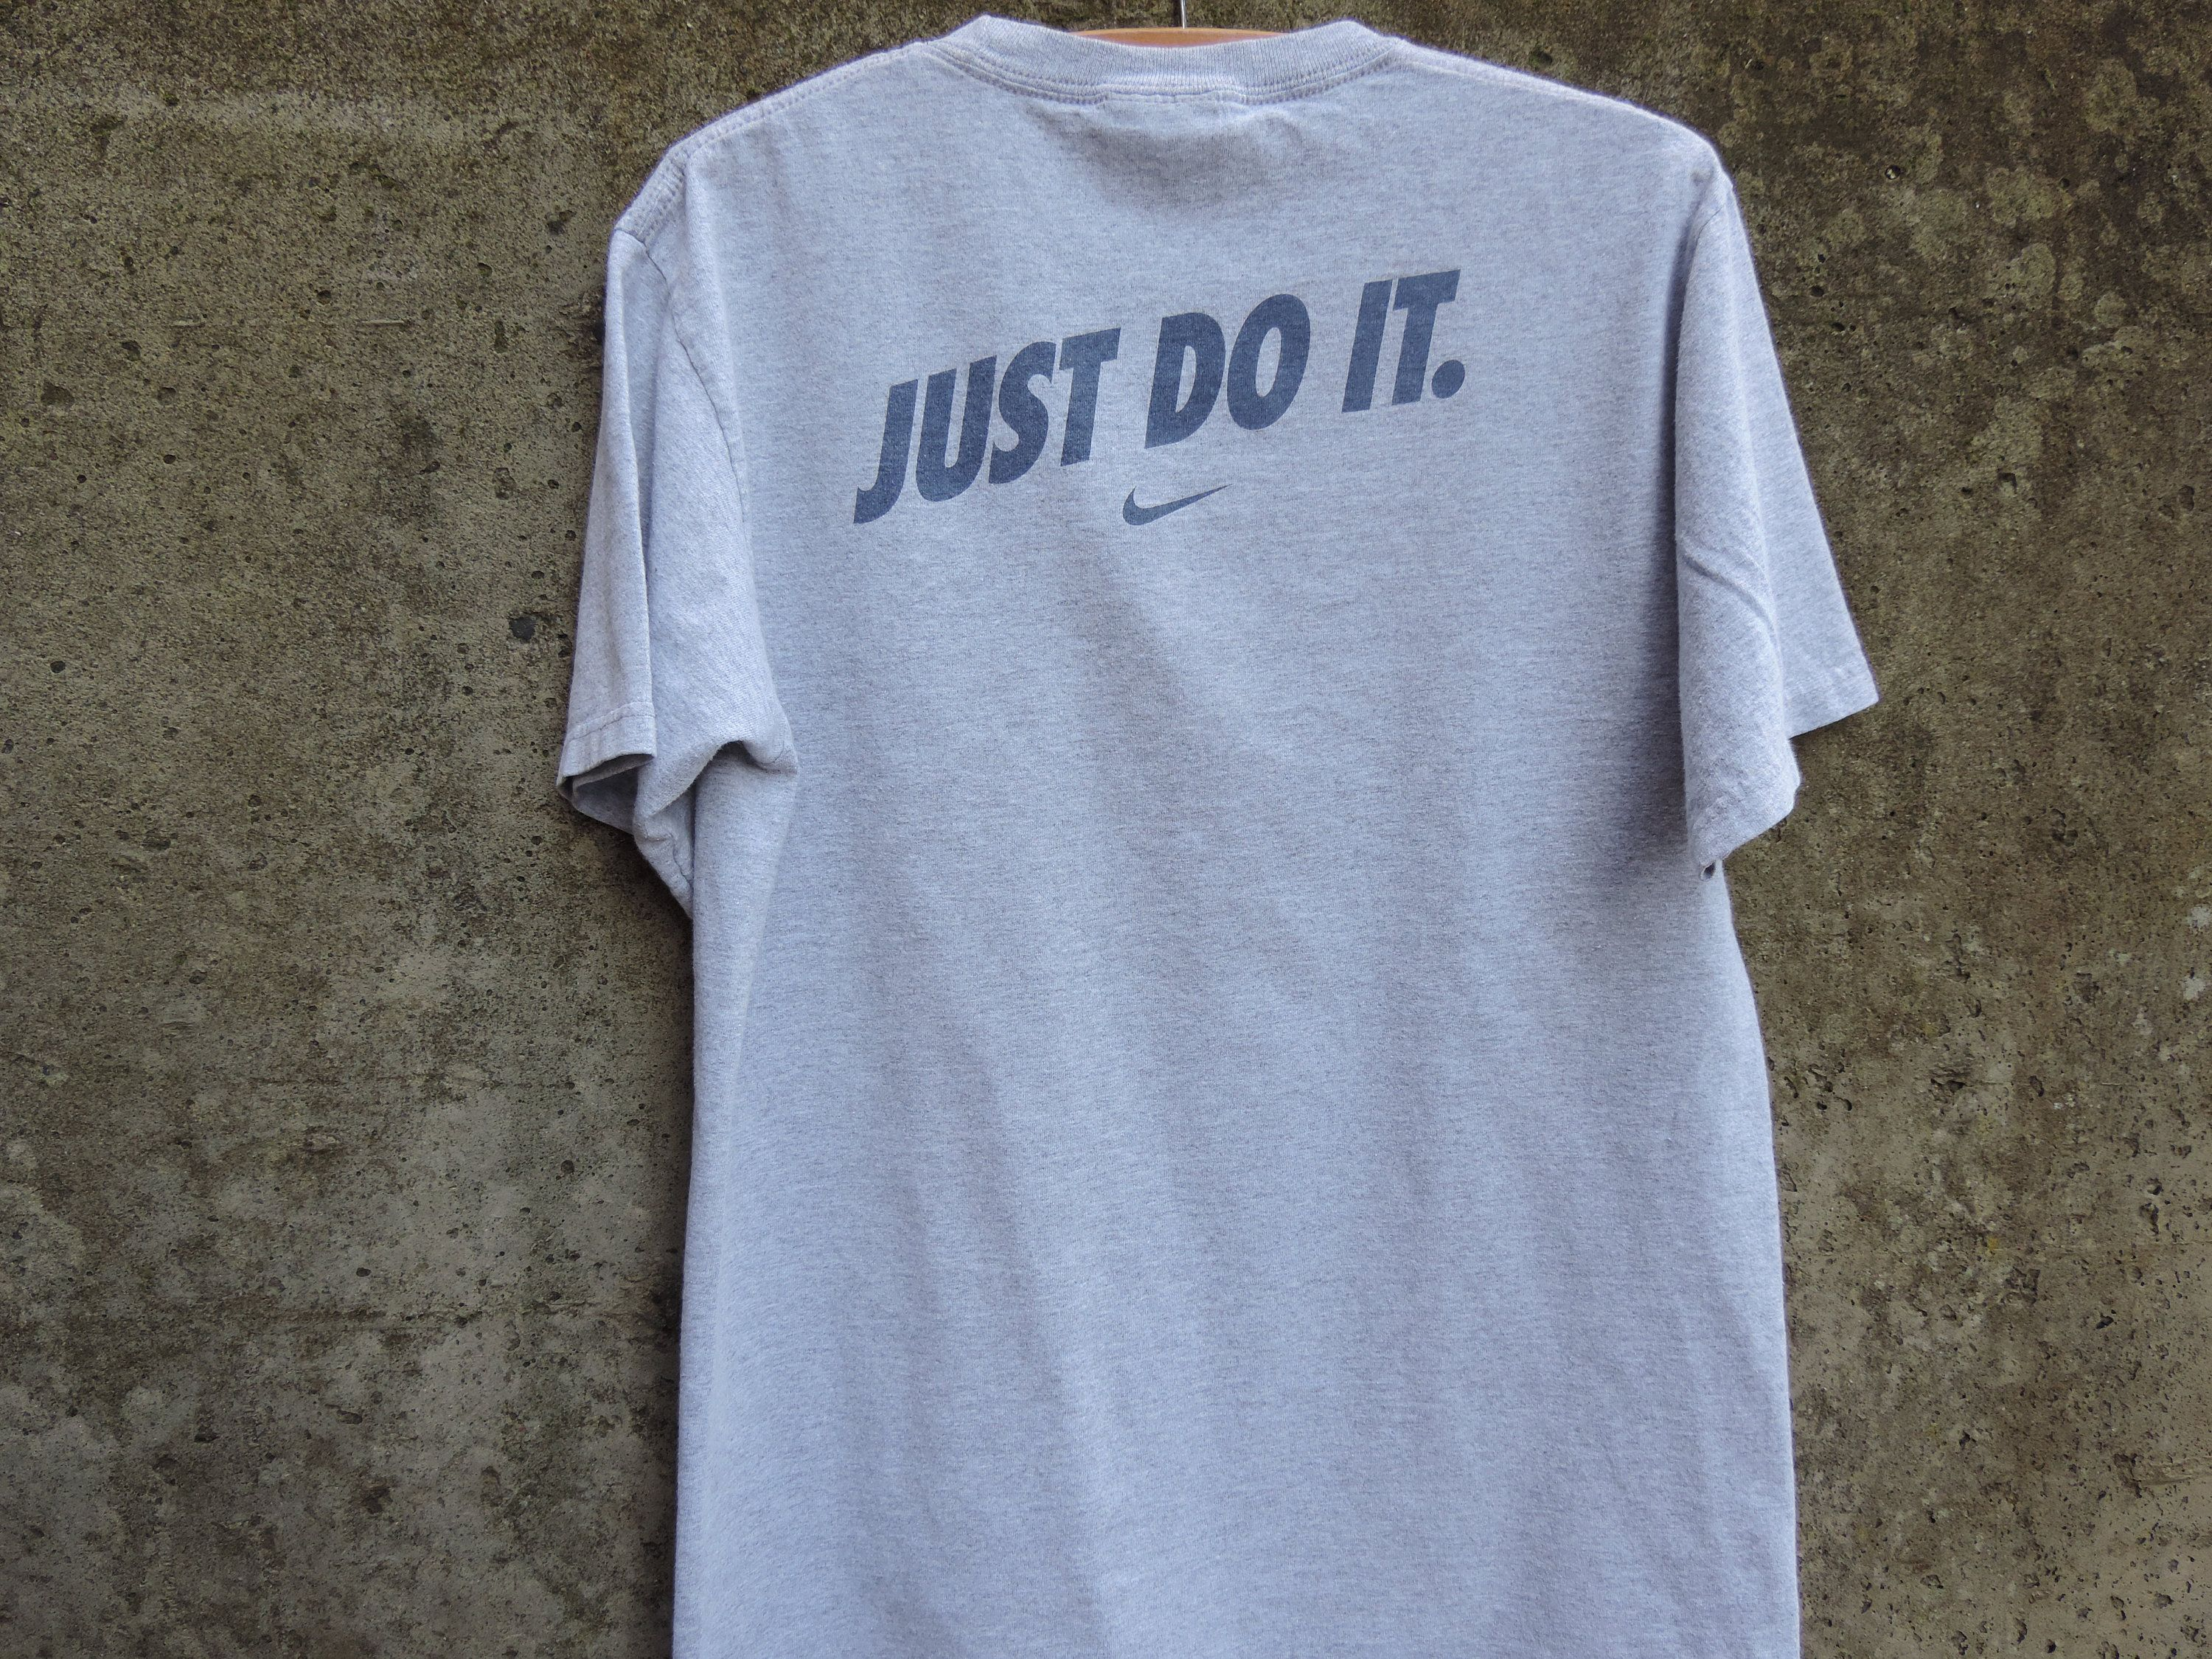 Vintage T Shirt Gonzaga Basketball Nike Just Do It Spell Out Size S Vintage Tshirts Vintage Tee Shirts Shirts